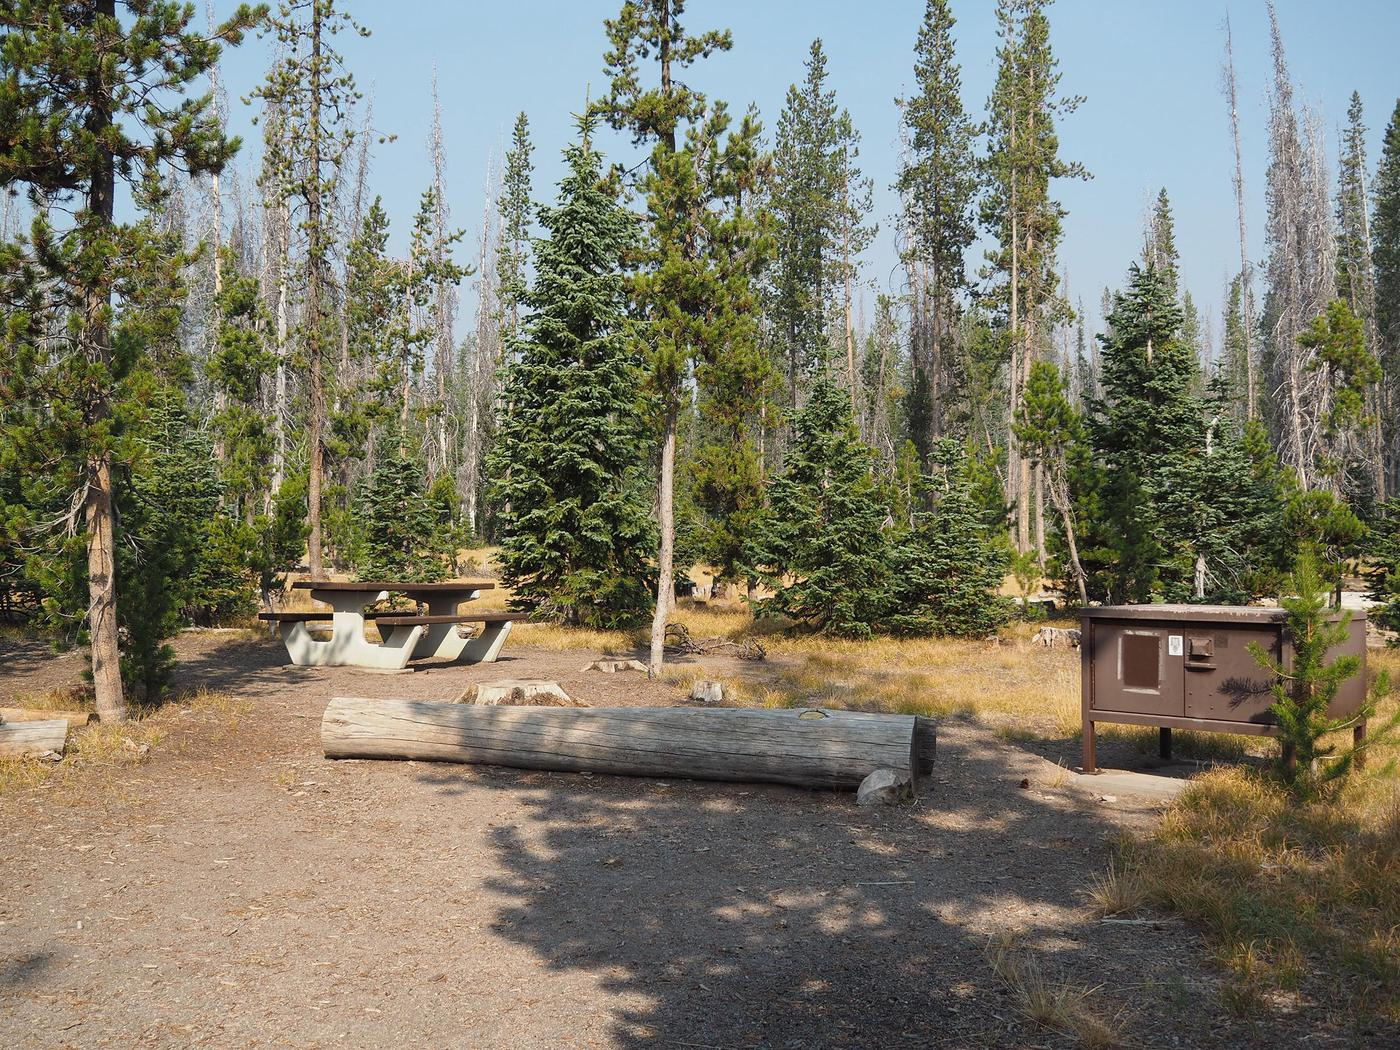 Lost Creek Campground SiteLost Creek Campsites are settled in a grassy meadow surrounded by conifers.